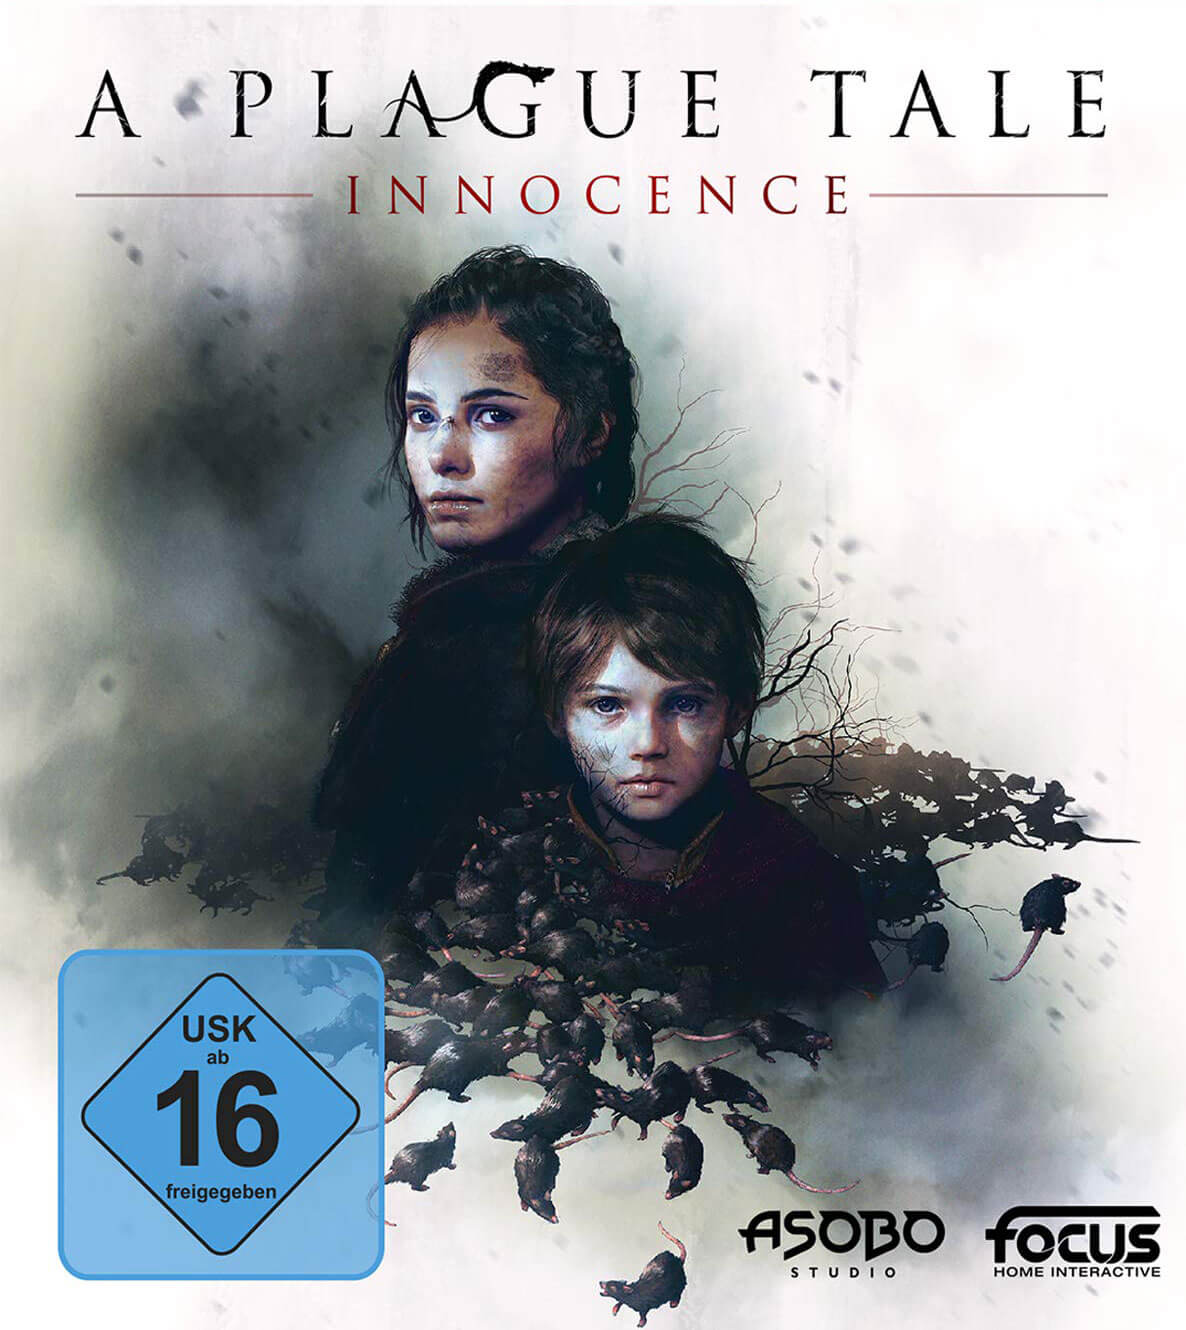 https://img5.downloadha.com/hosein/files/2019/05/A-Plague-Tale-Innocence-pc-cover-large.jpg